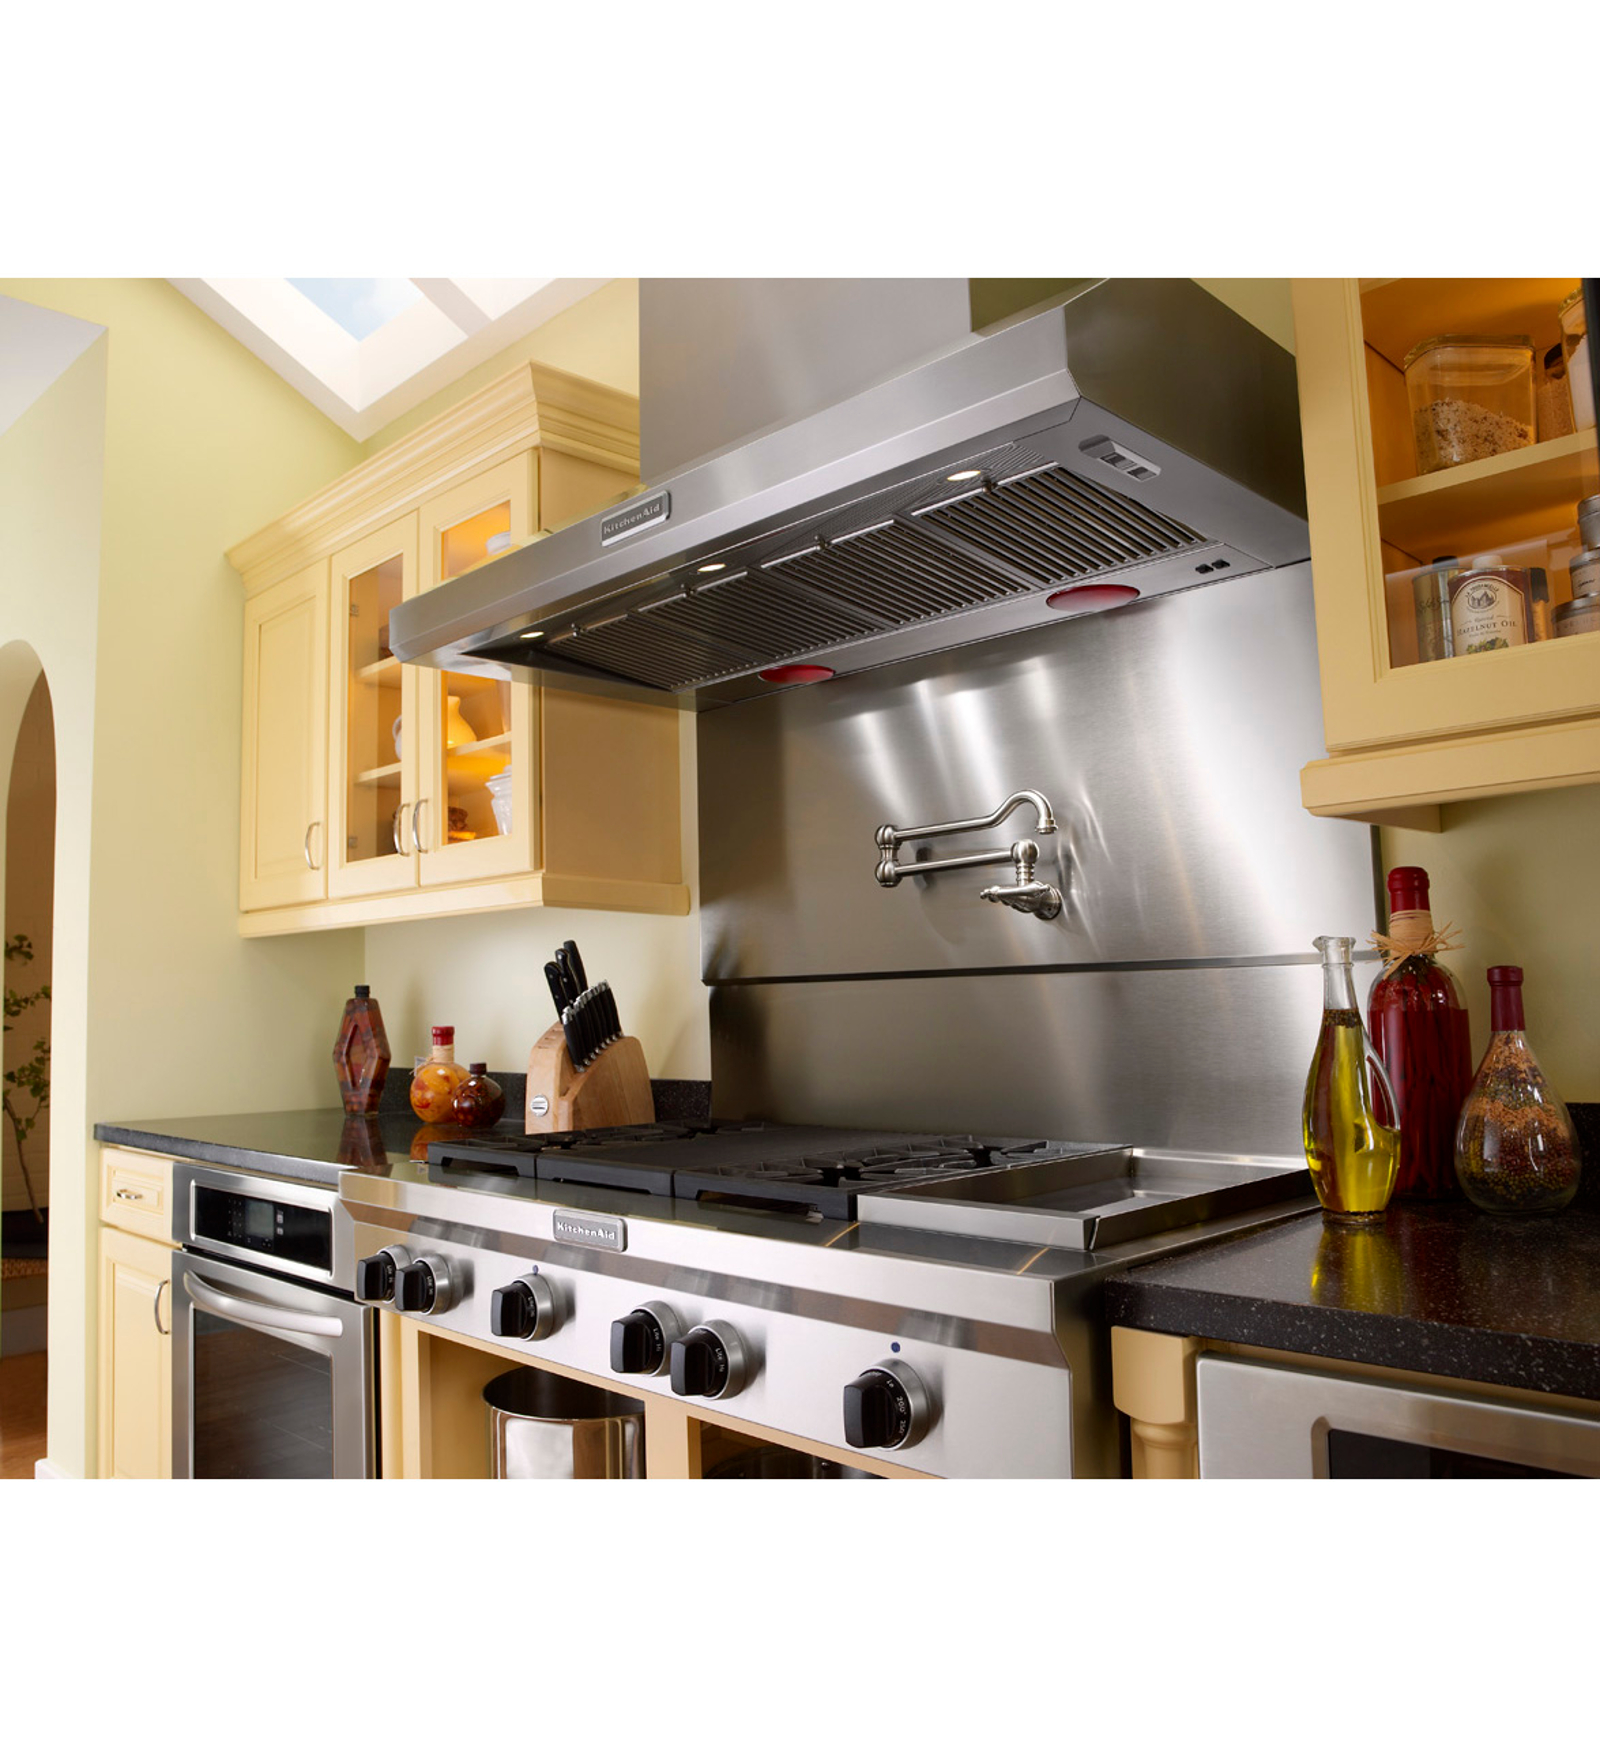 KitchenAid KDRS483VSS Pro-Style® 6.3 cu. ft. Dual Fuel Range w/ Griddle - Stainless Steel